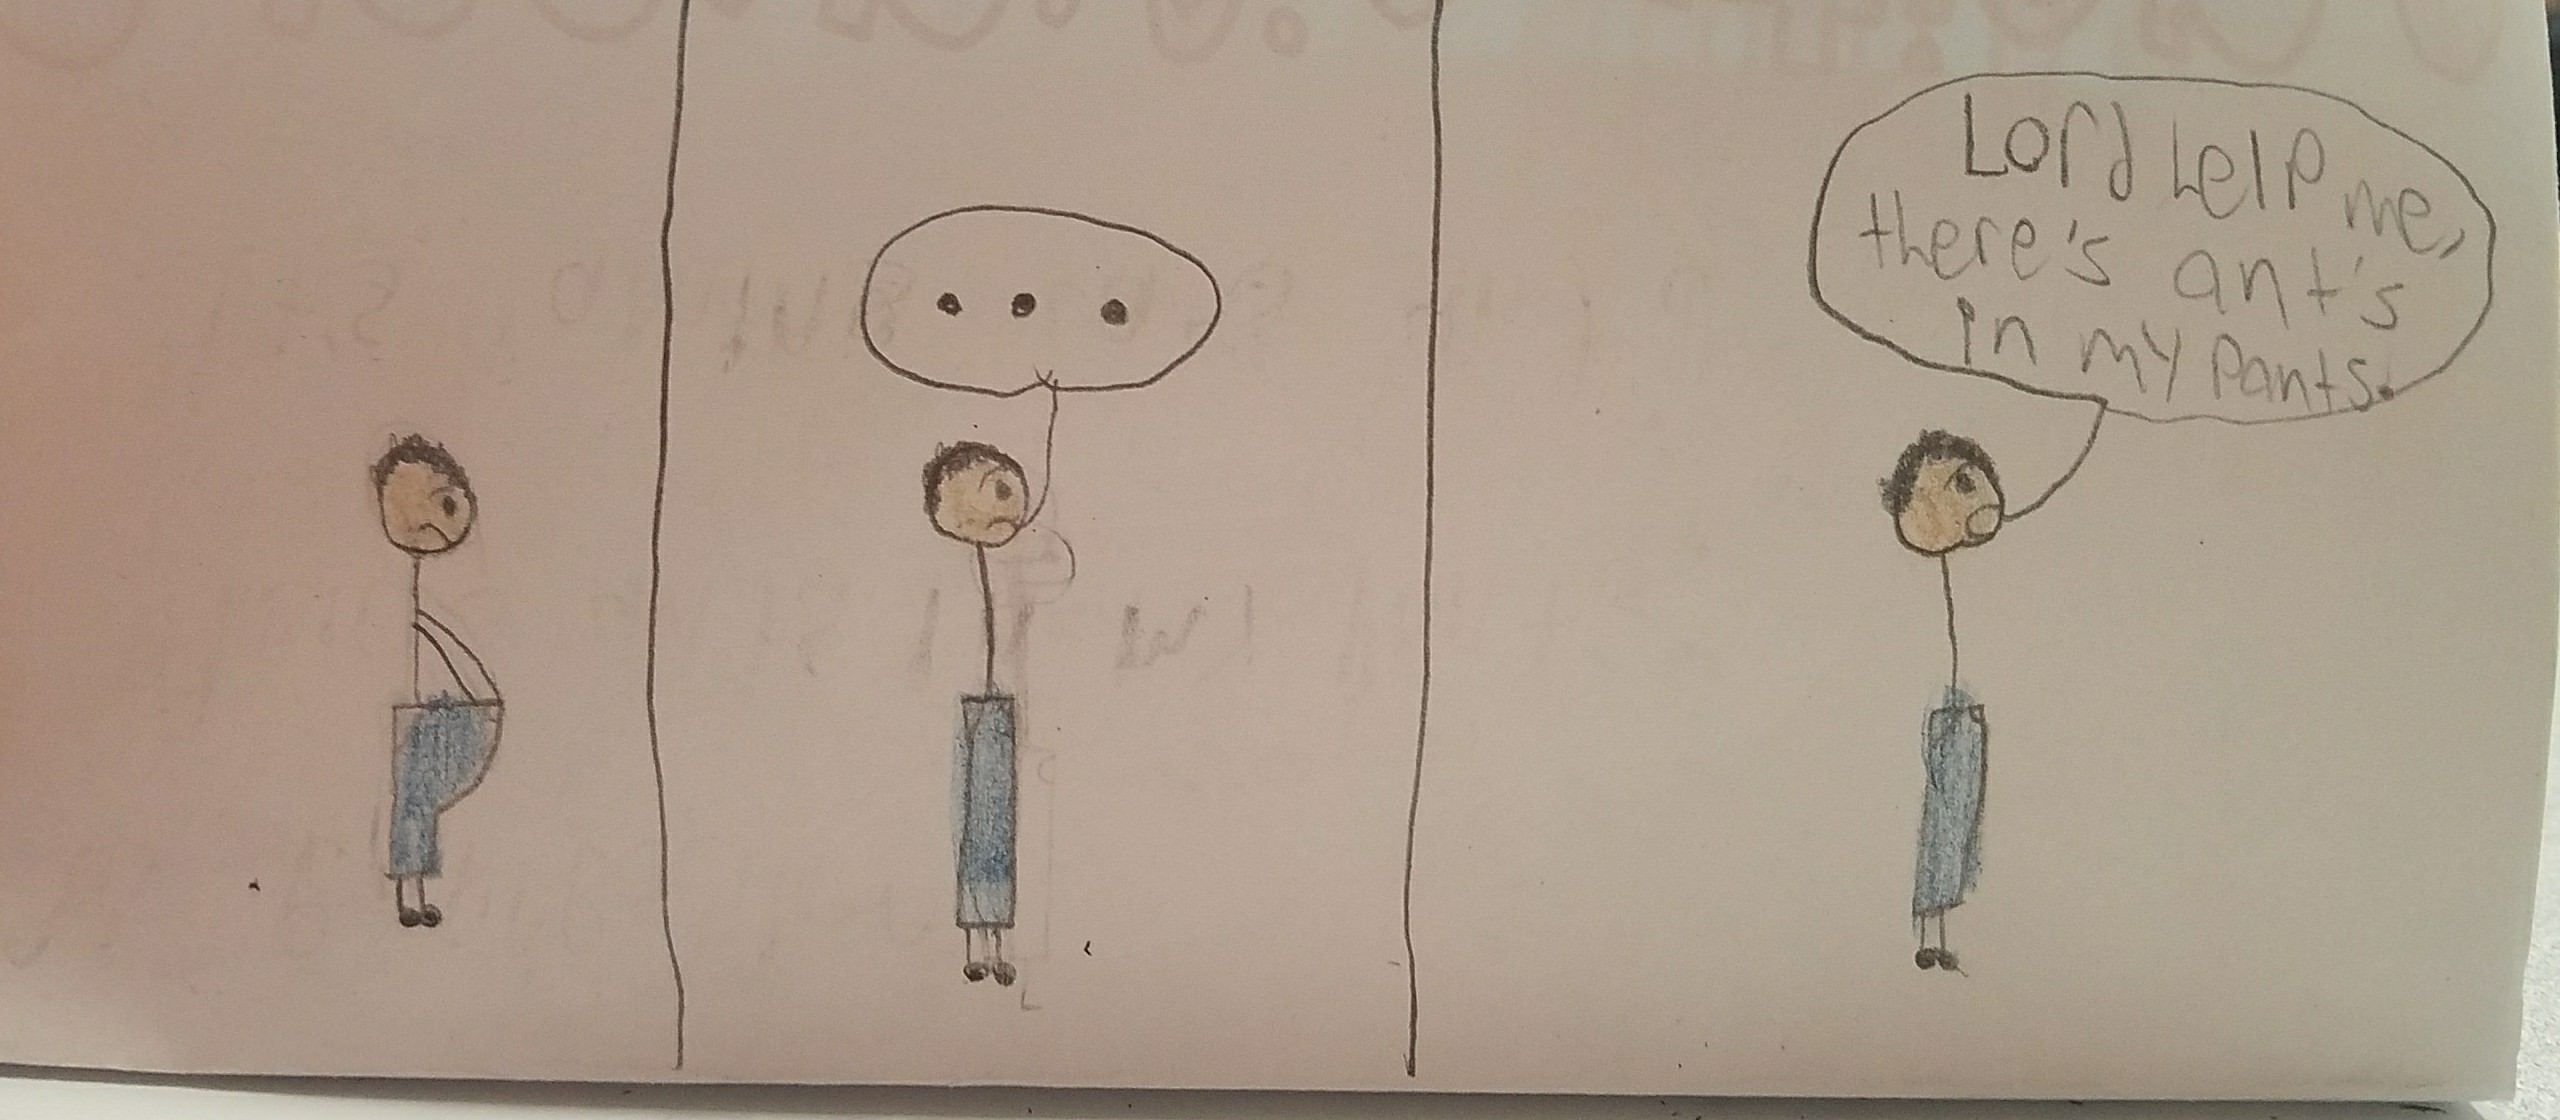 A 6th grader in my wife's class drew this comic - Lord help me